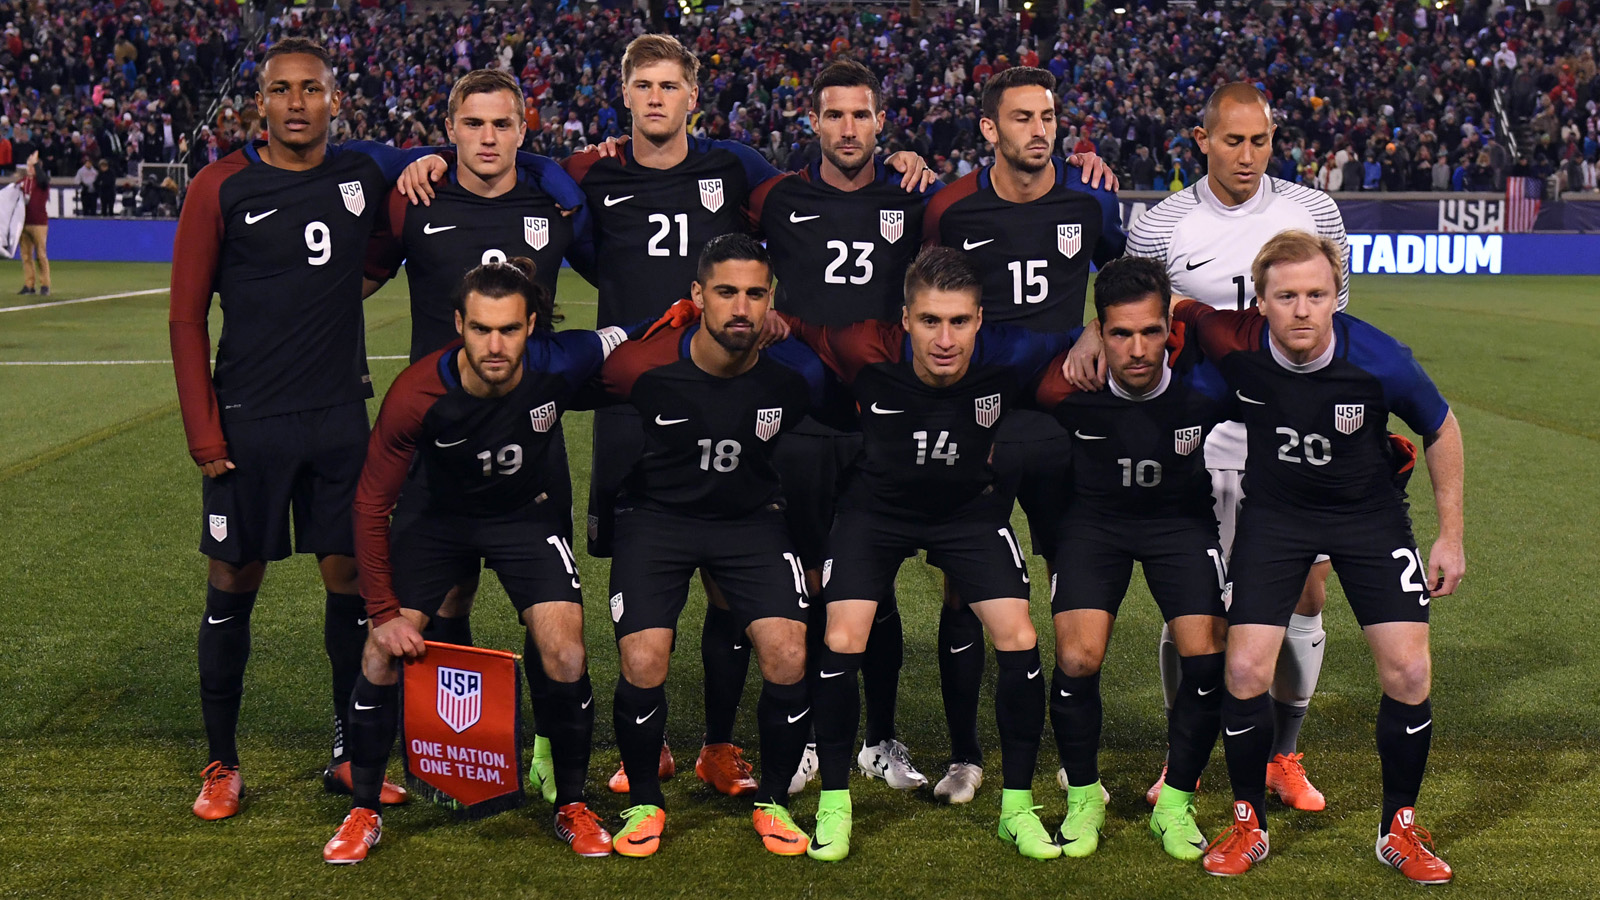 Feb 3, 2017; Chattanooga, TN, USA; United States players pose for a team photo prior to the international friendly game against Jamaica at Finley Stadium. Mandatory Credit: Christopher Hanewinckel-USA TODAY Sports